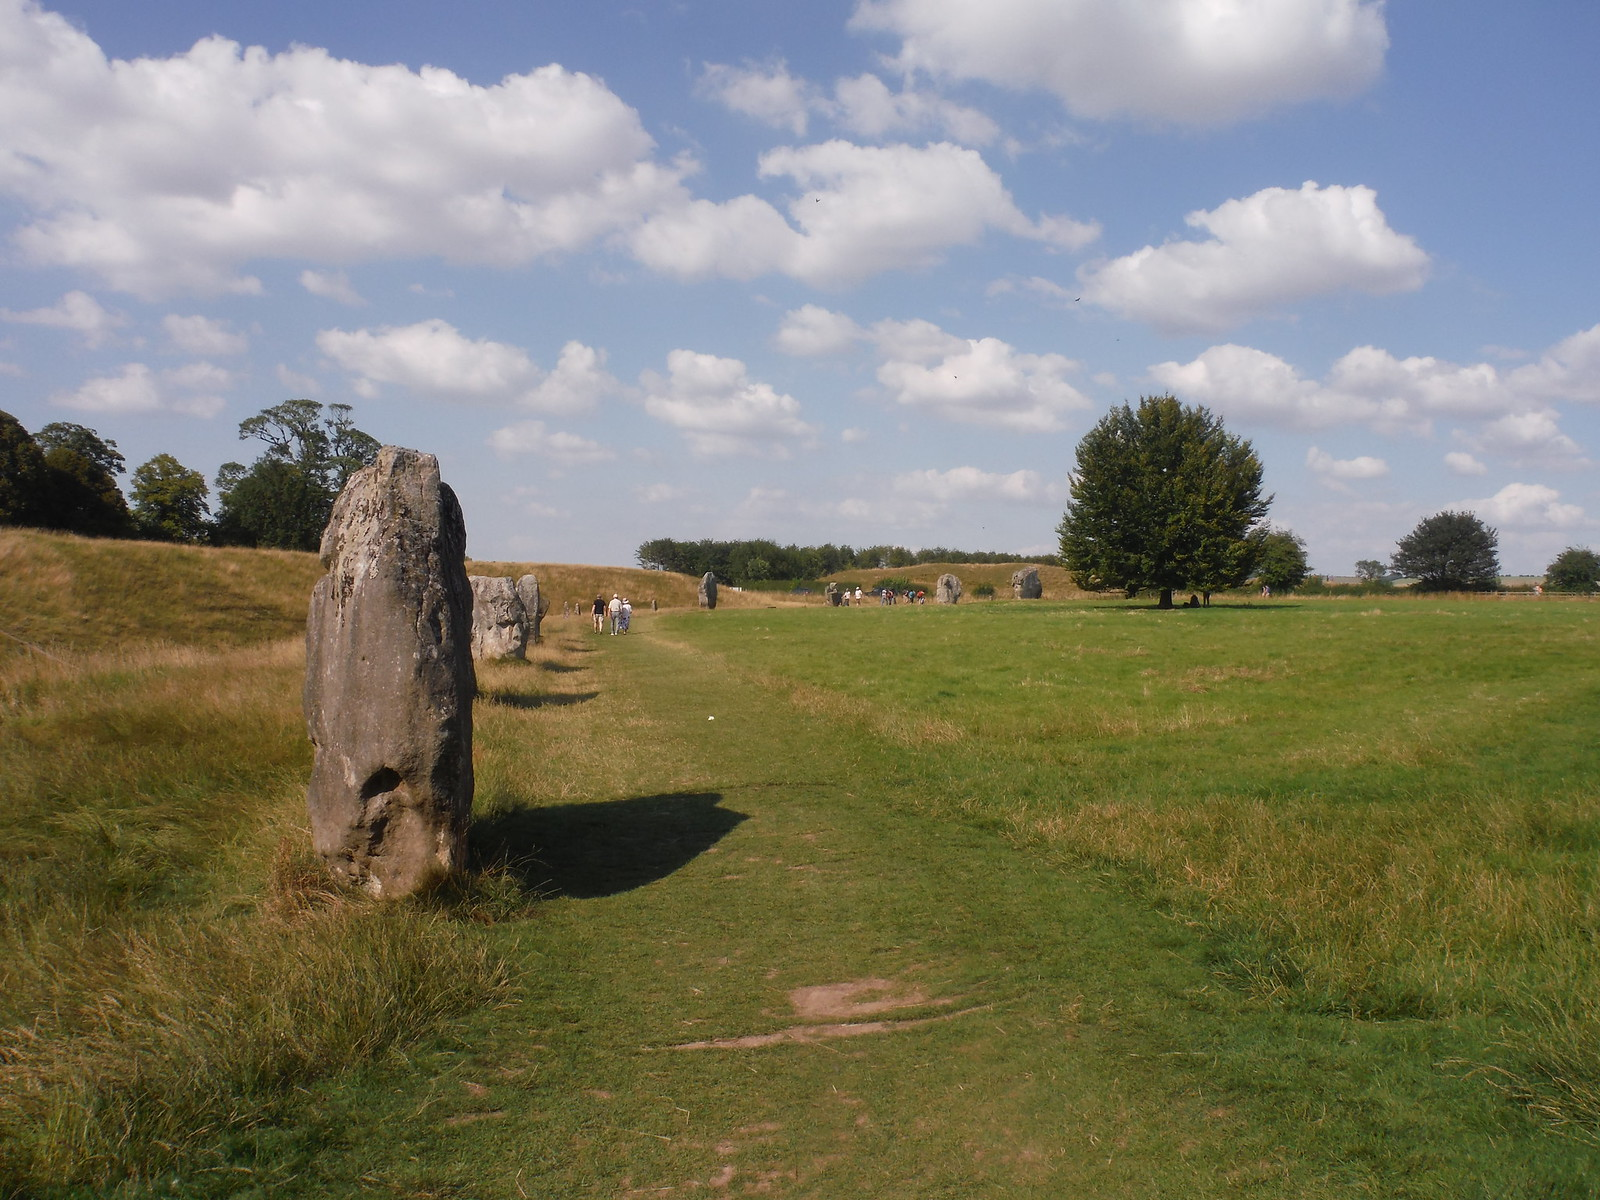 Avebury Standing Stones, NW quartile SWC Walk 255 Pewsey or Marlborough Circular via Avebury